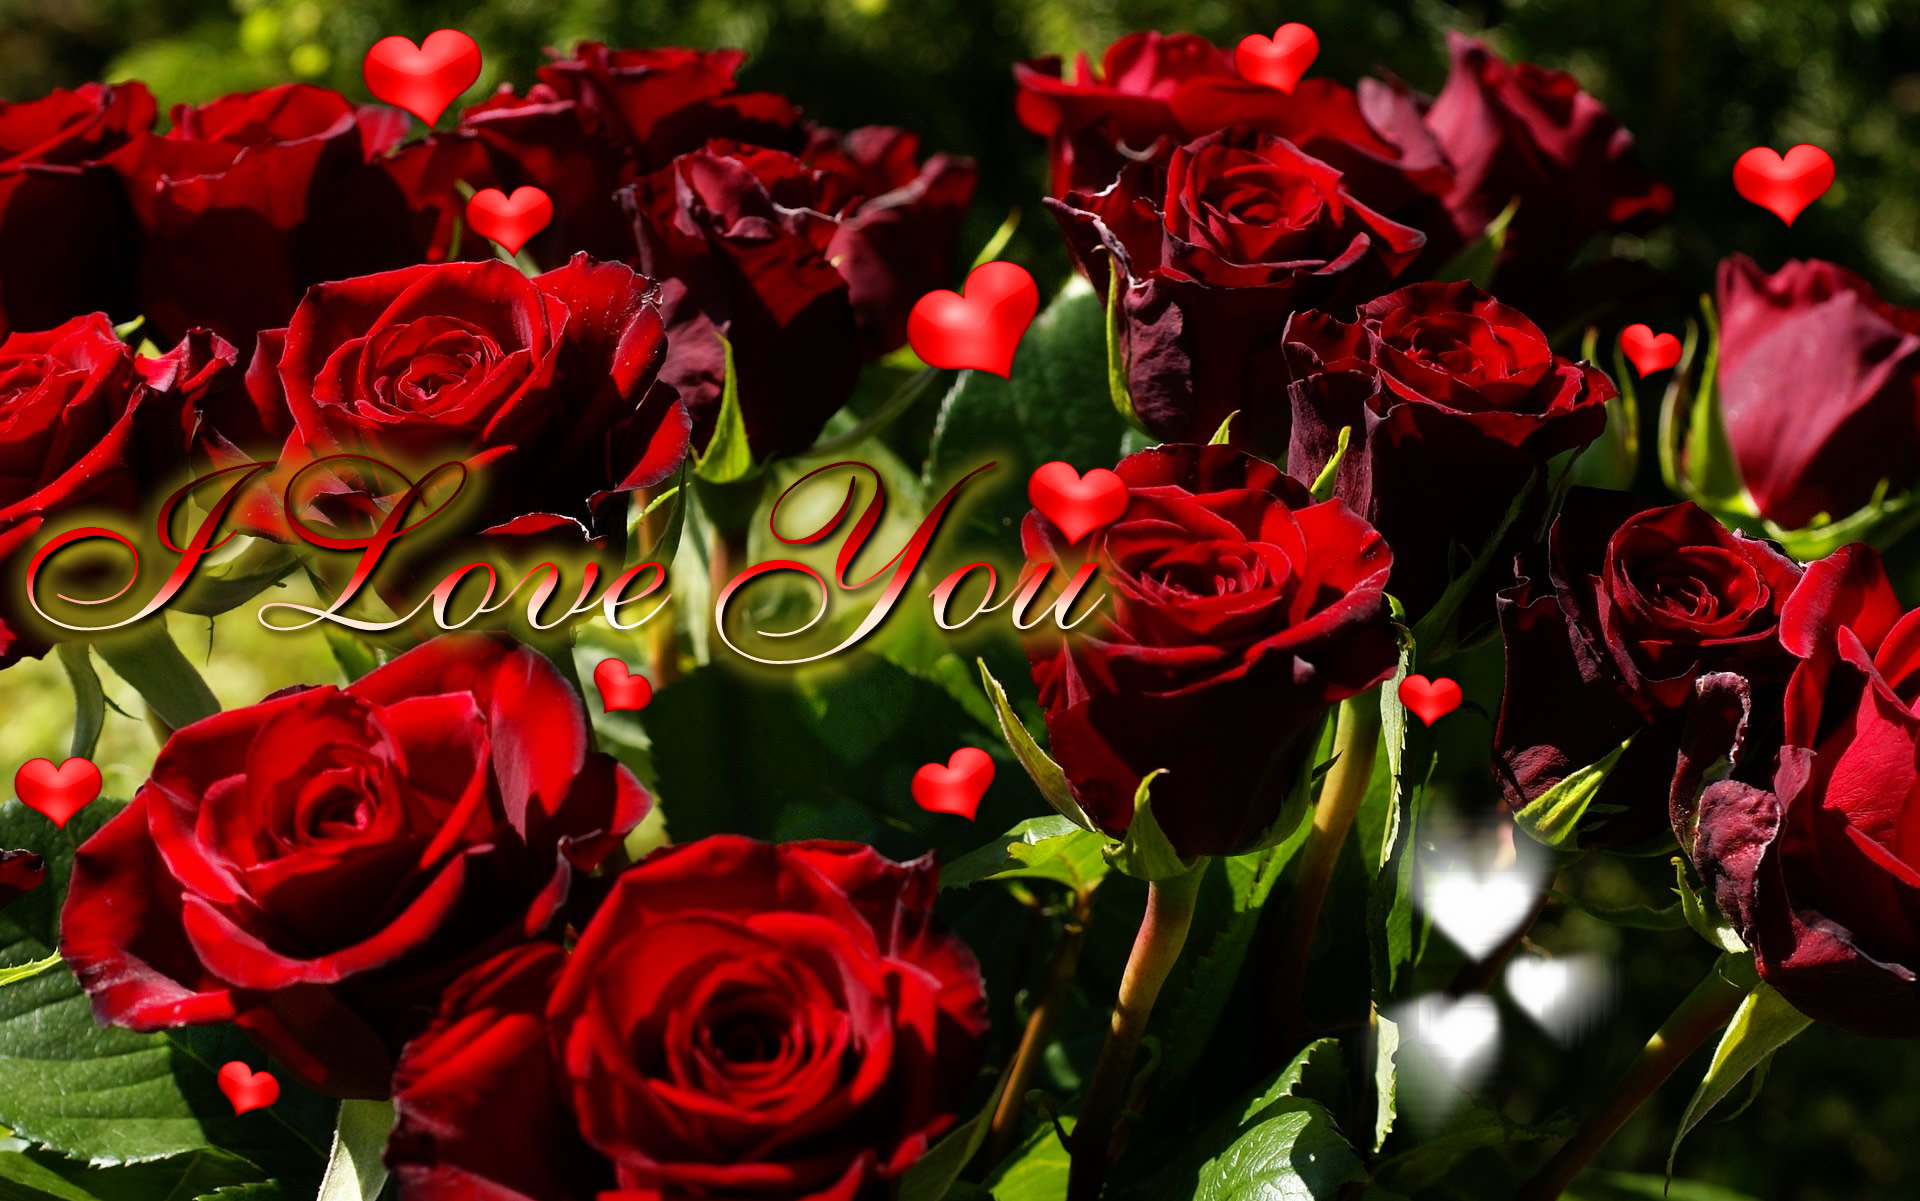 Desktop Wallpaper I Love You : Top 10 Flower I Love You Wallpaper